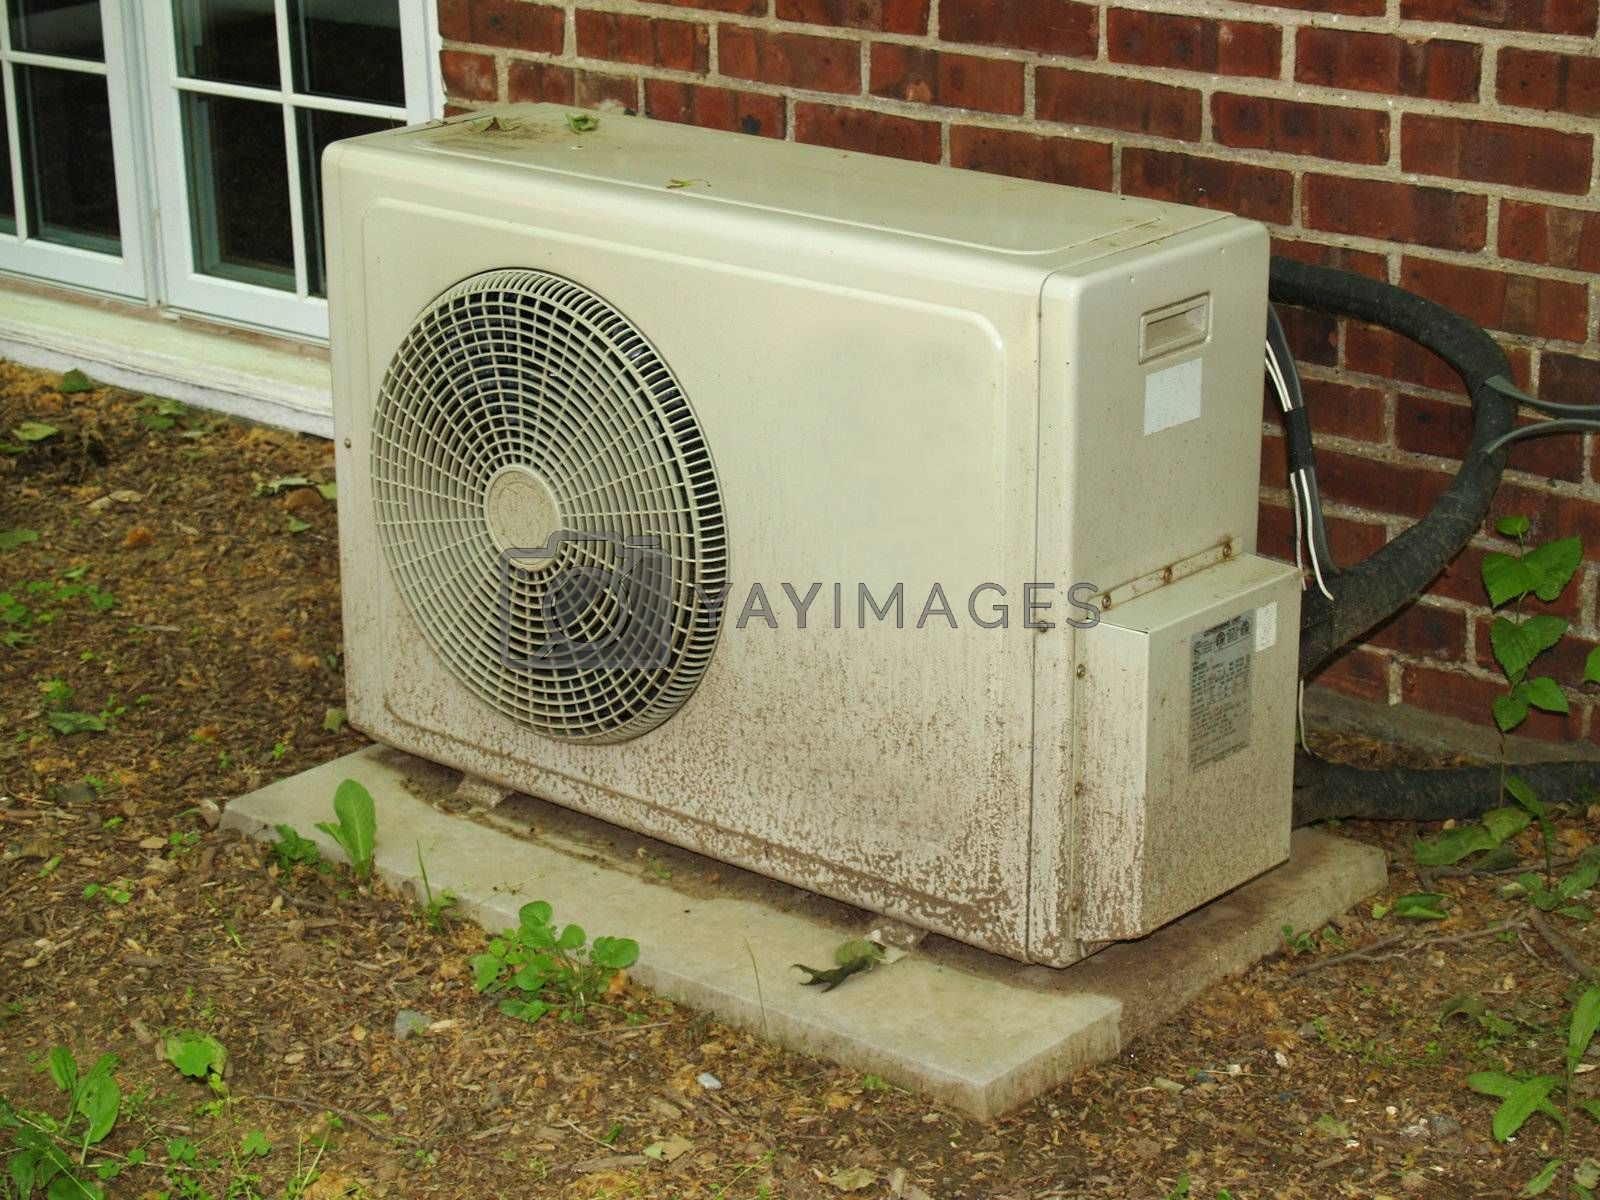 an outdoor air conditioning unit by a building